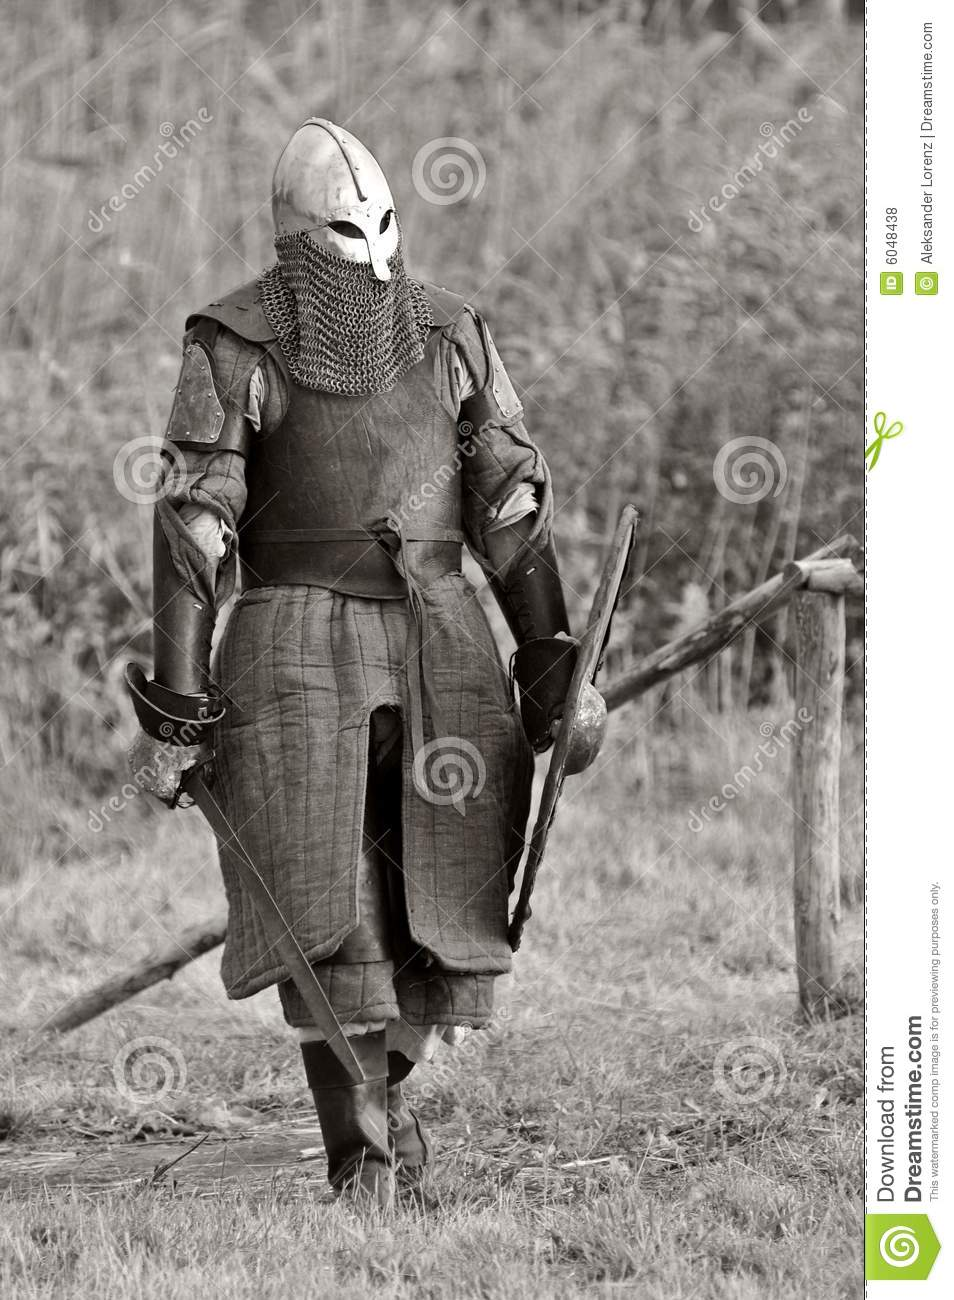 Knight Stock Images RoyaltyFree Images amp Vectors